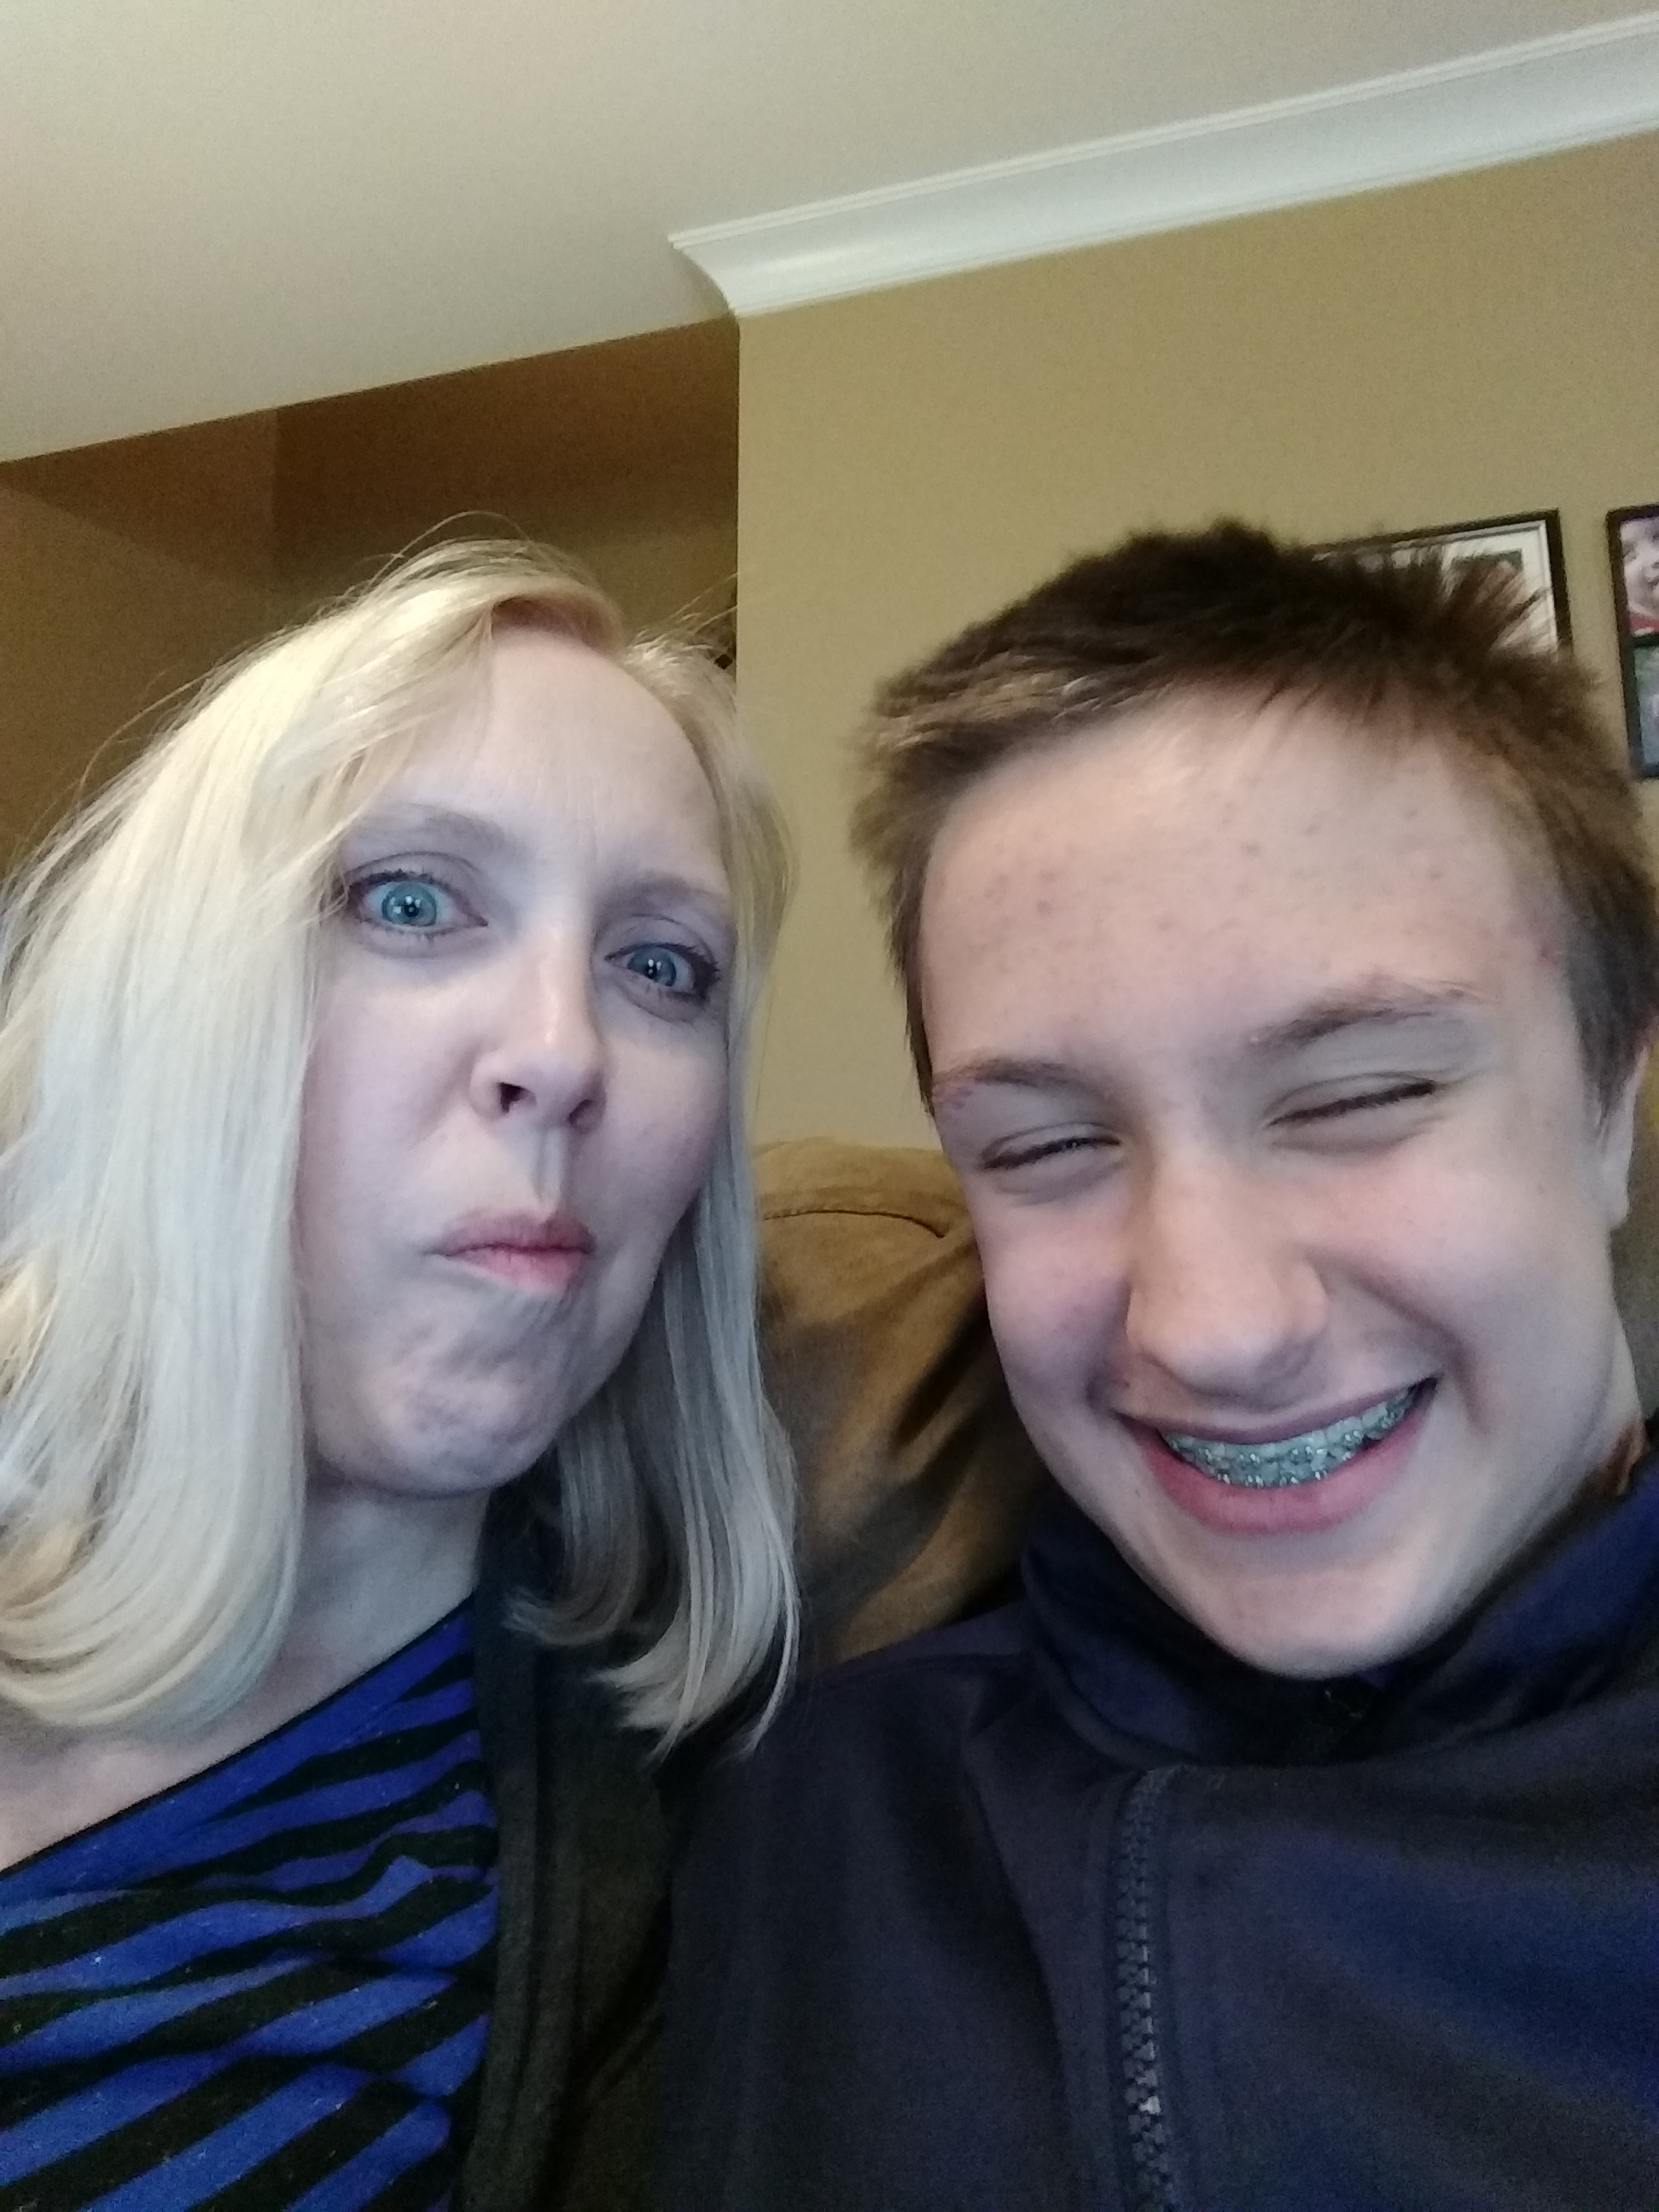 Mom and son selfie